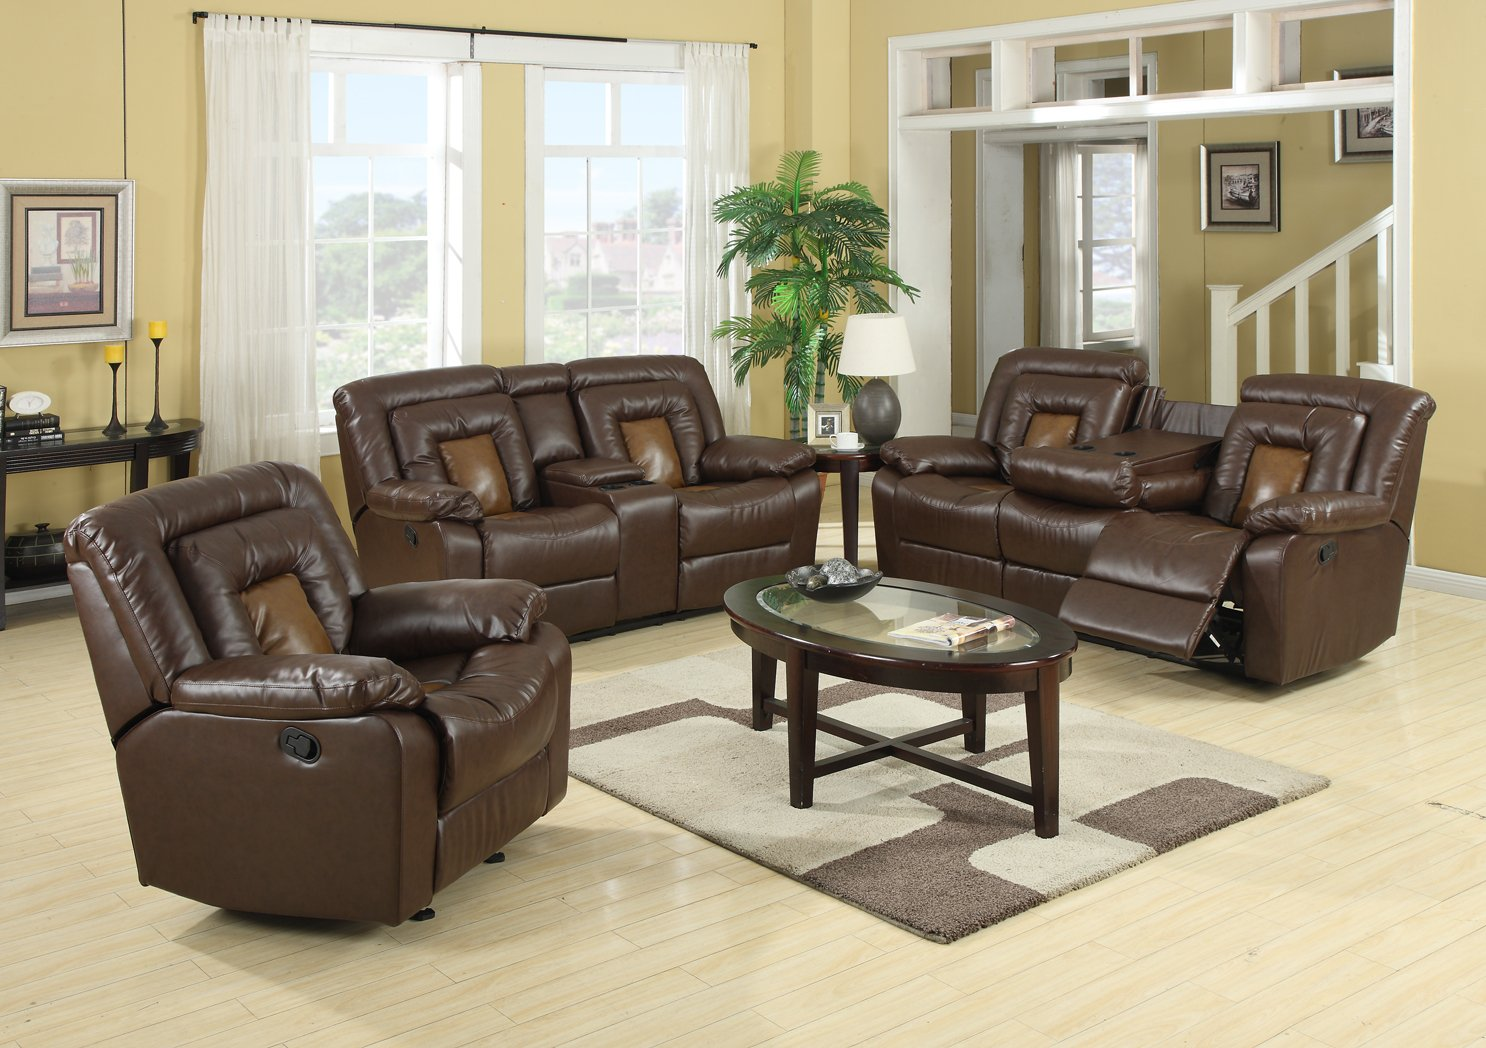 Amazon com gtu furniture cobra pu leather reclining sofa loveseat recliner set luxurious living room furniture sofa loveseat brown kitchen dining